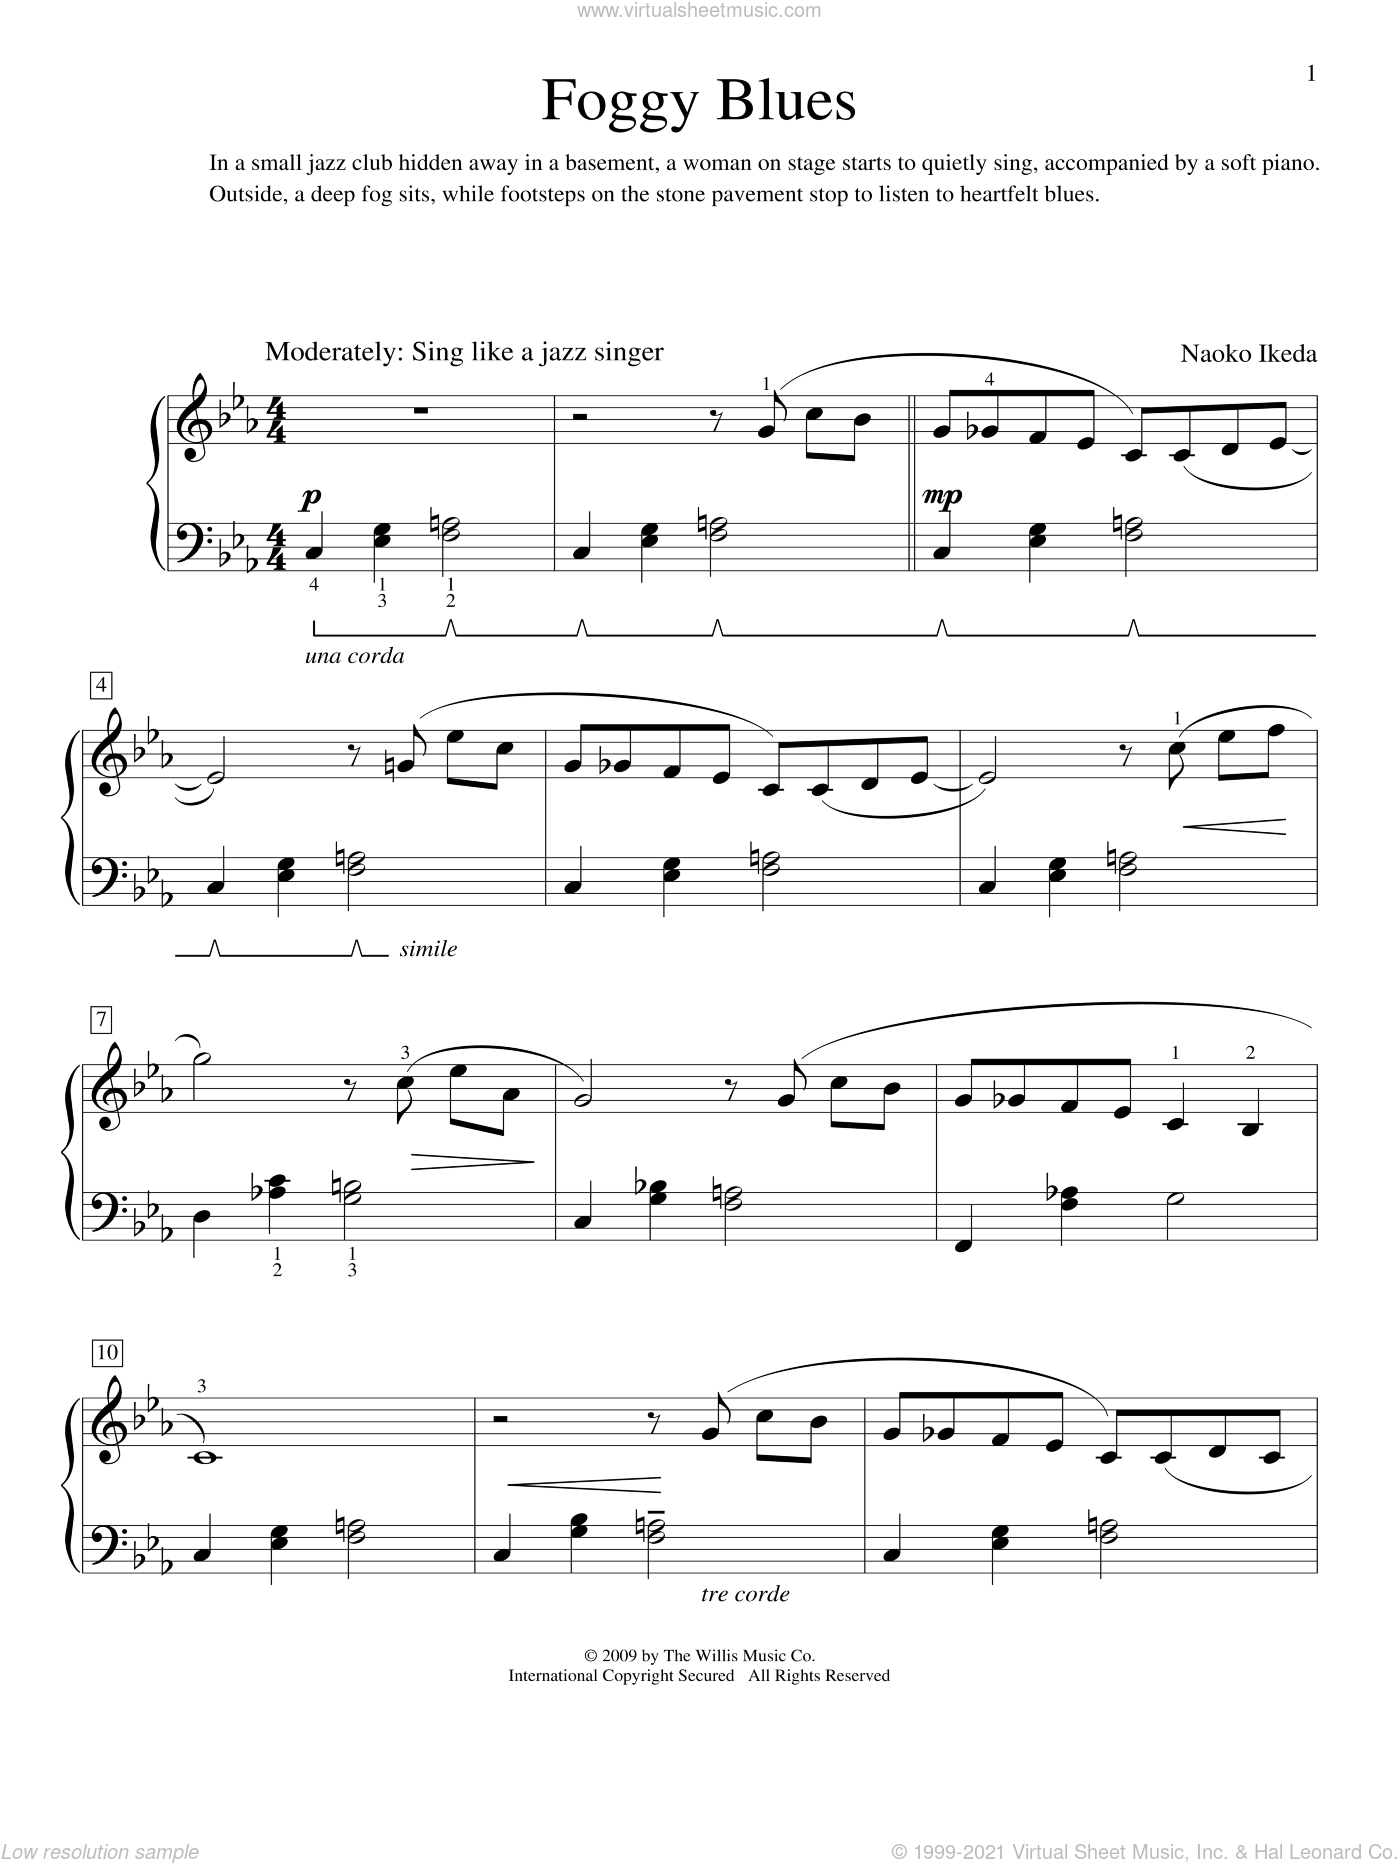 Foggy Blues sheet music for piano solo (elementary) by Naoko Ikeda. Score Image Preview.